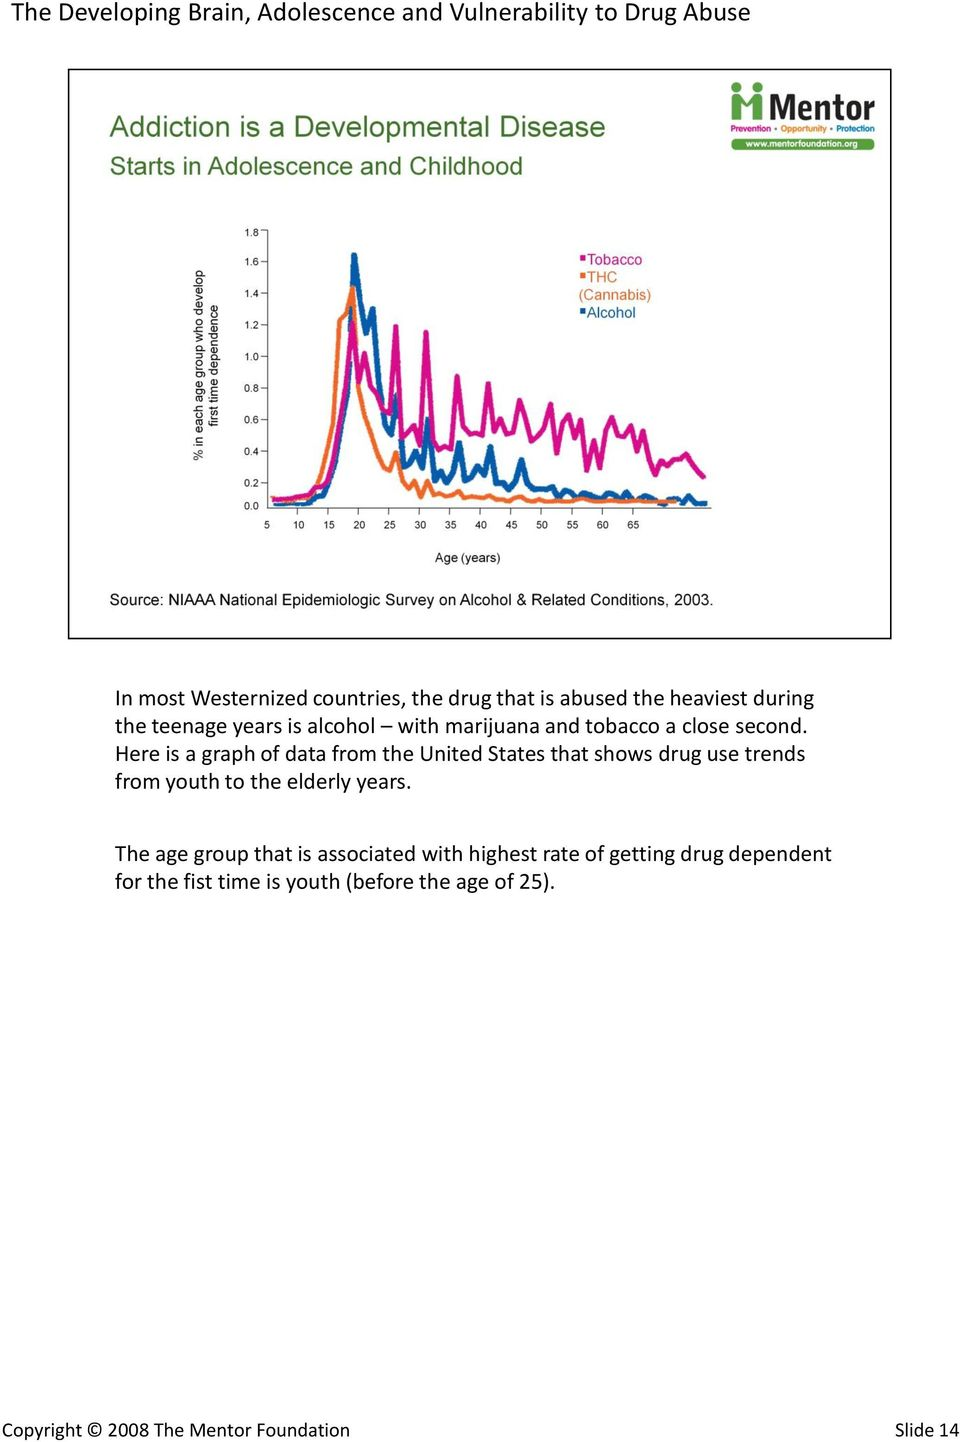 Here is a graph of data from the United States that shows drug use trends from youth to the